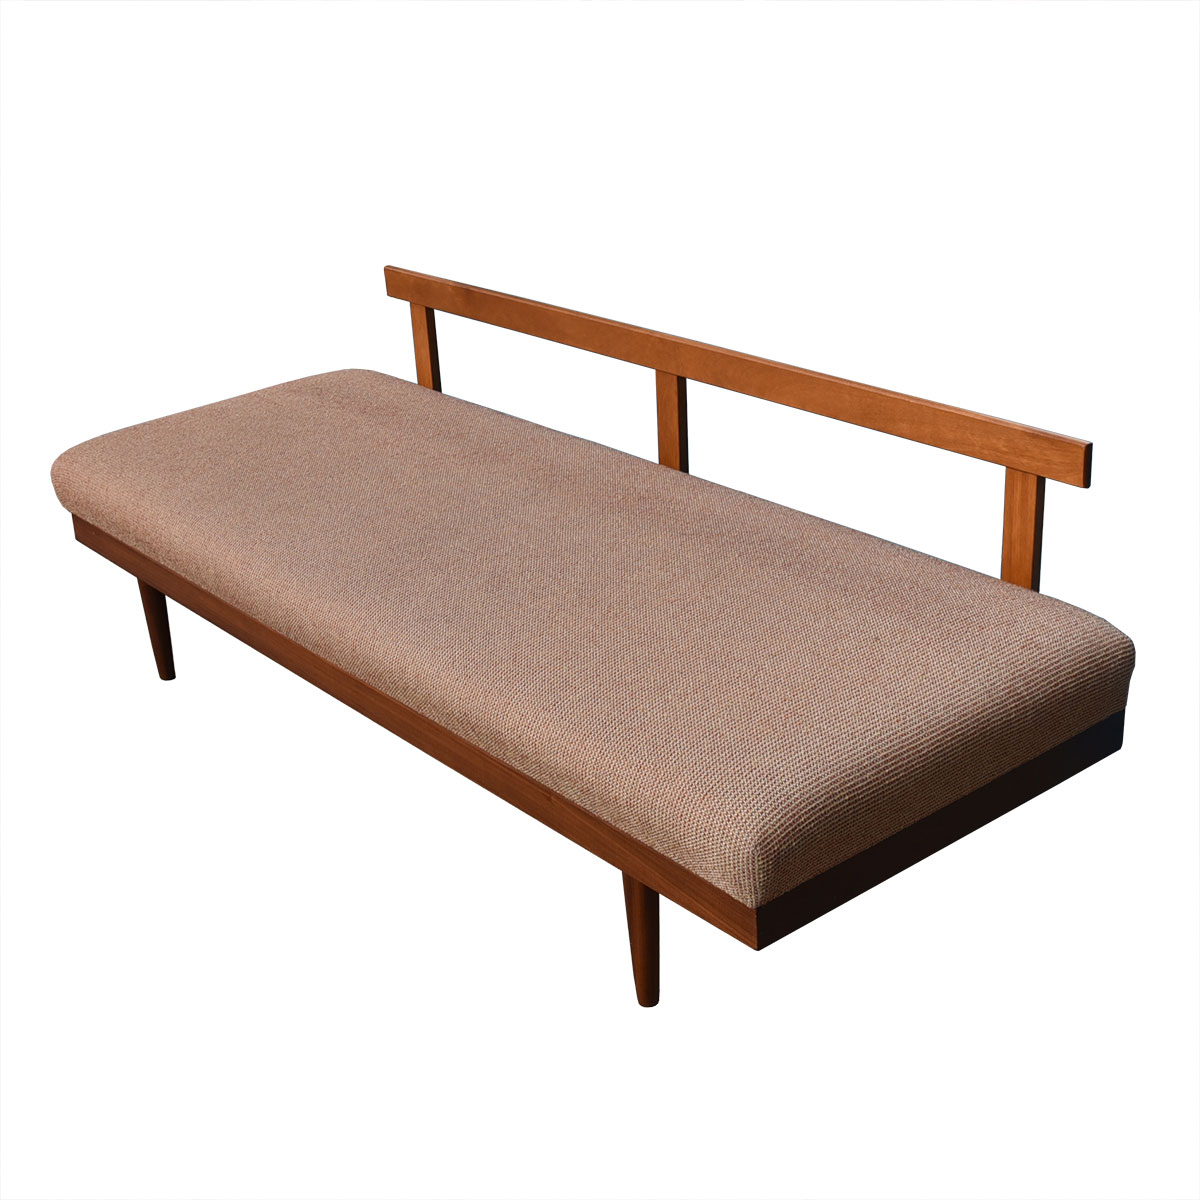 Danish Modern Teak Long Daybed w/ Storage